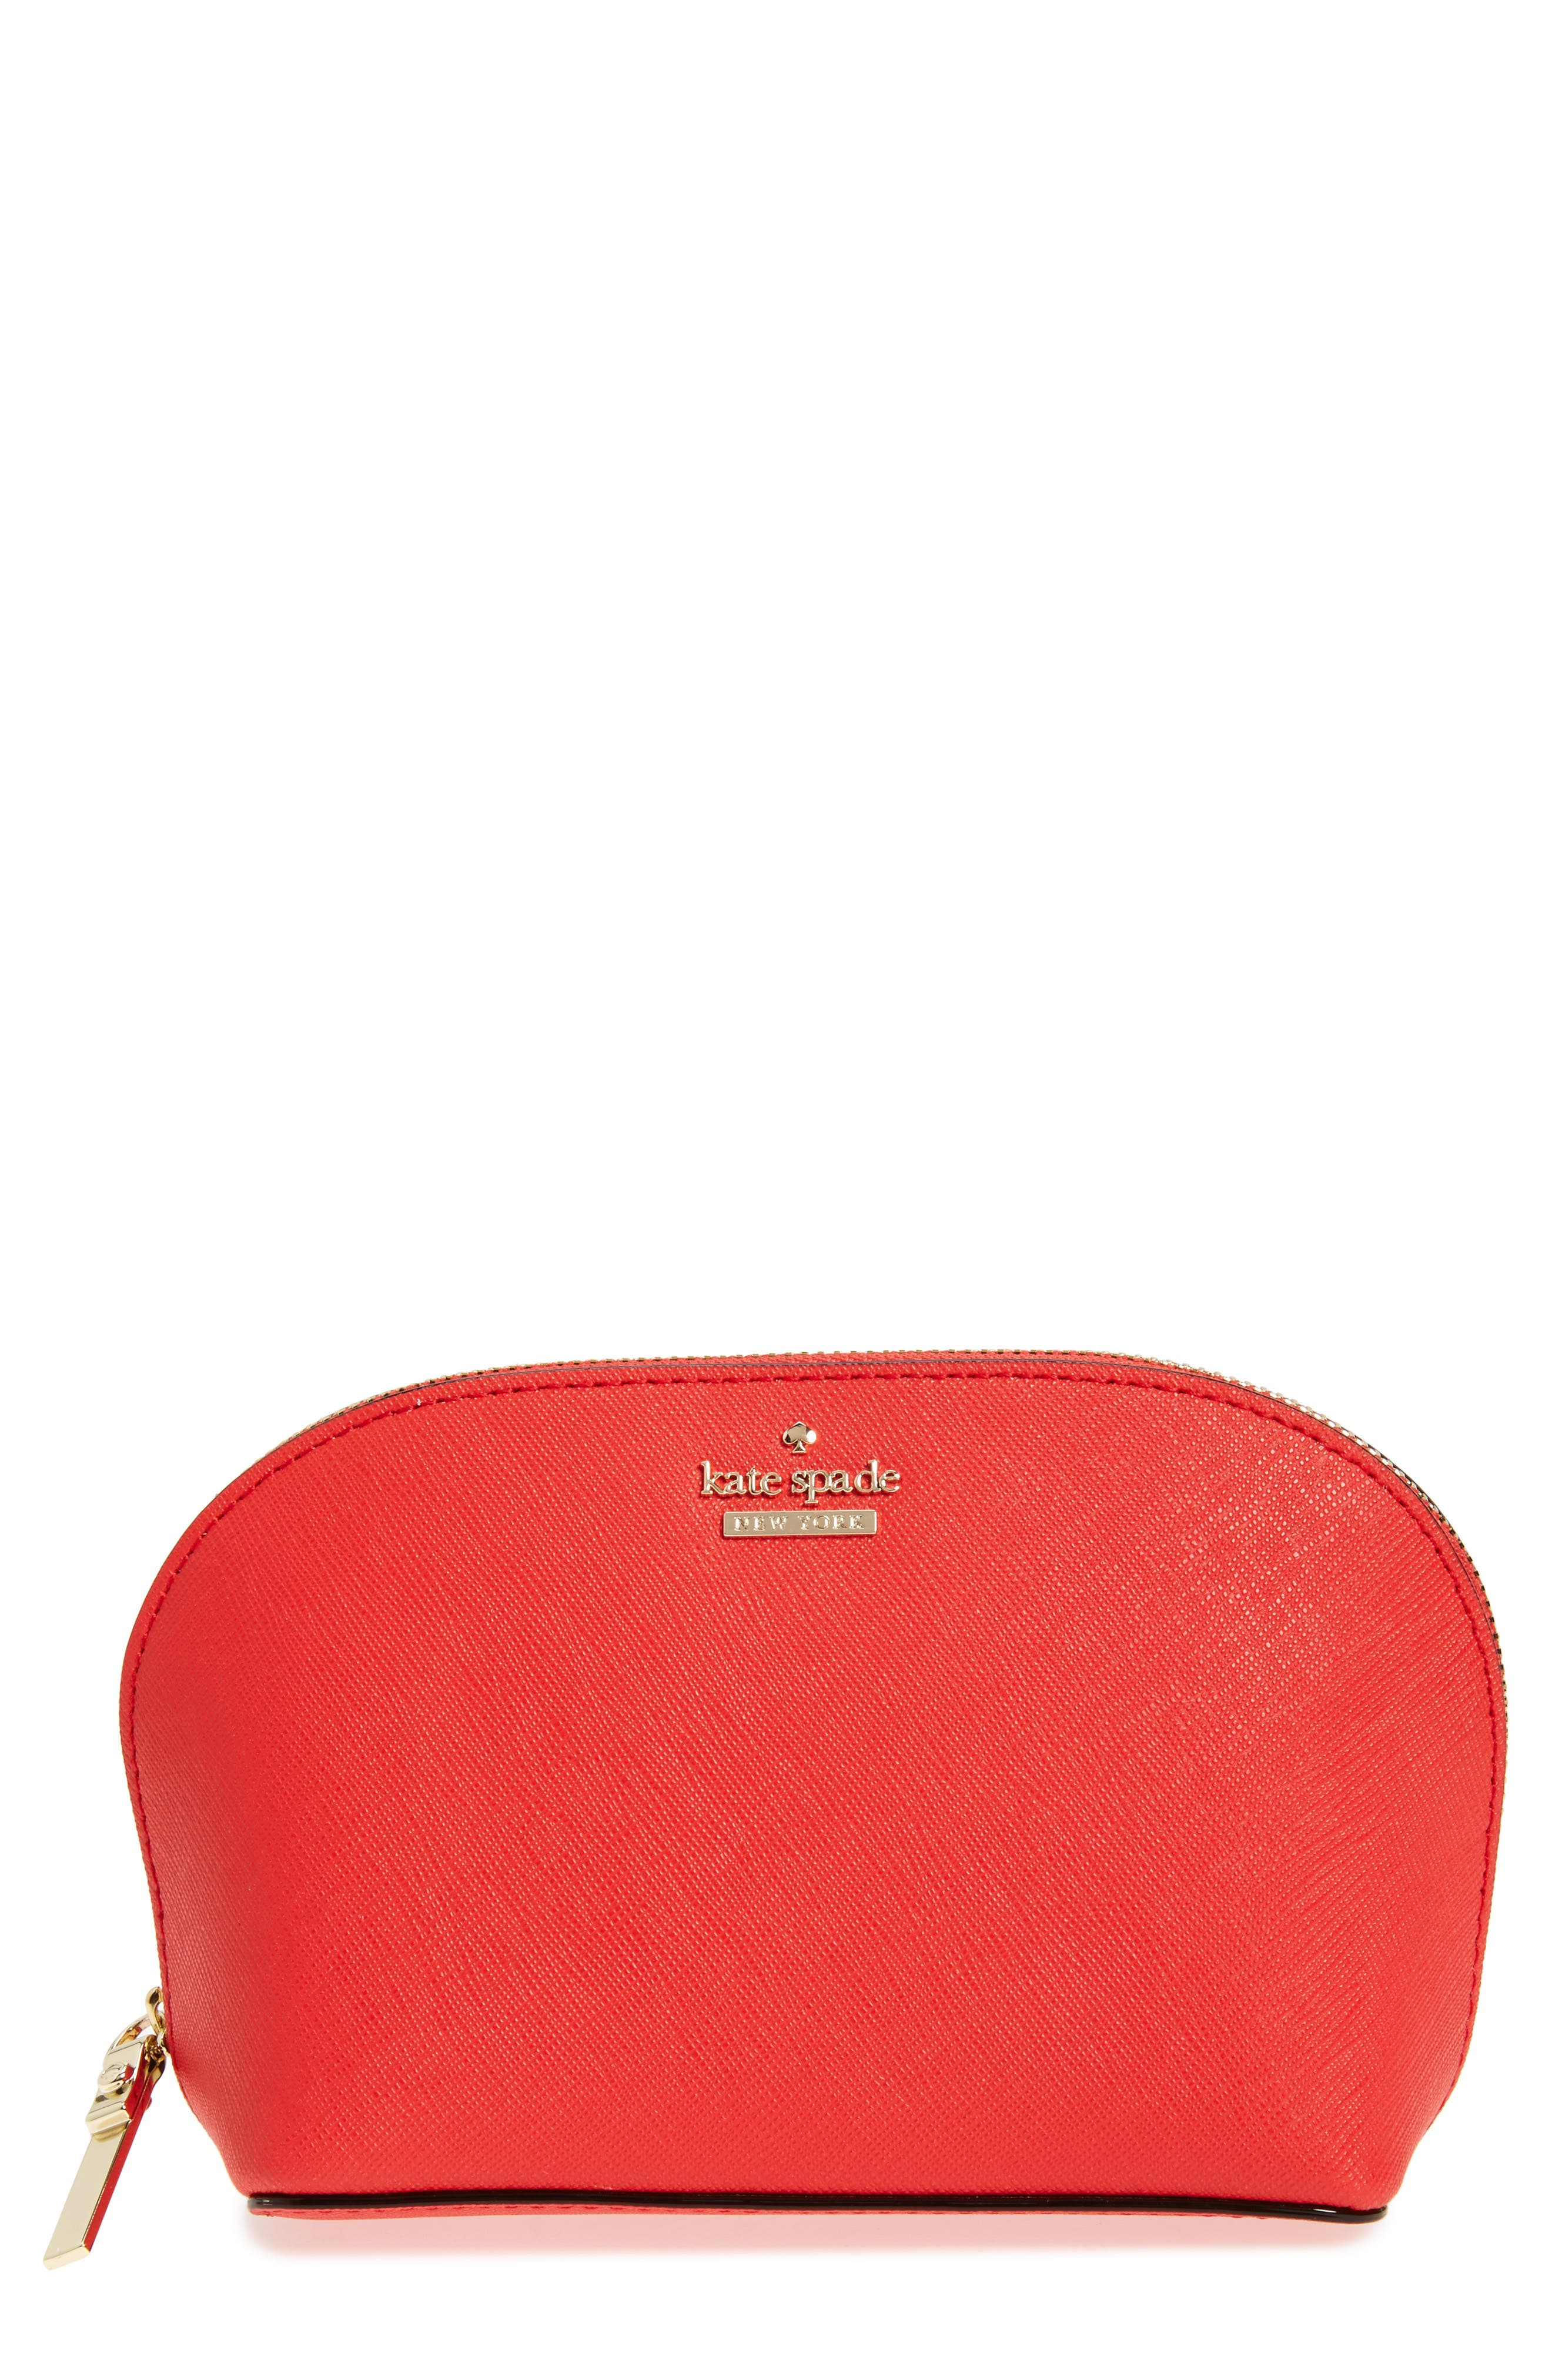 kate spade new york cameron street - small abalene leather cosmetics case